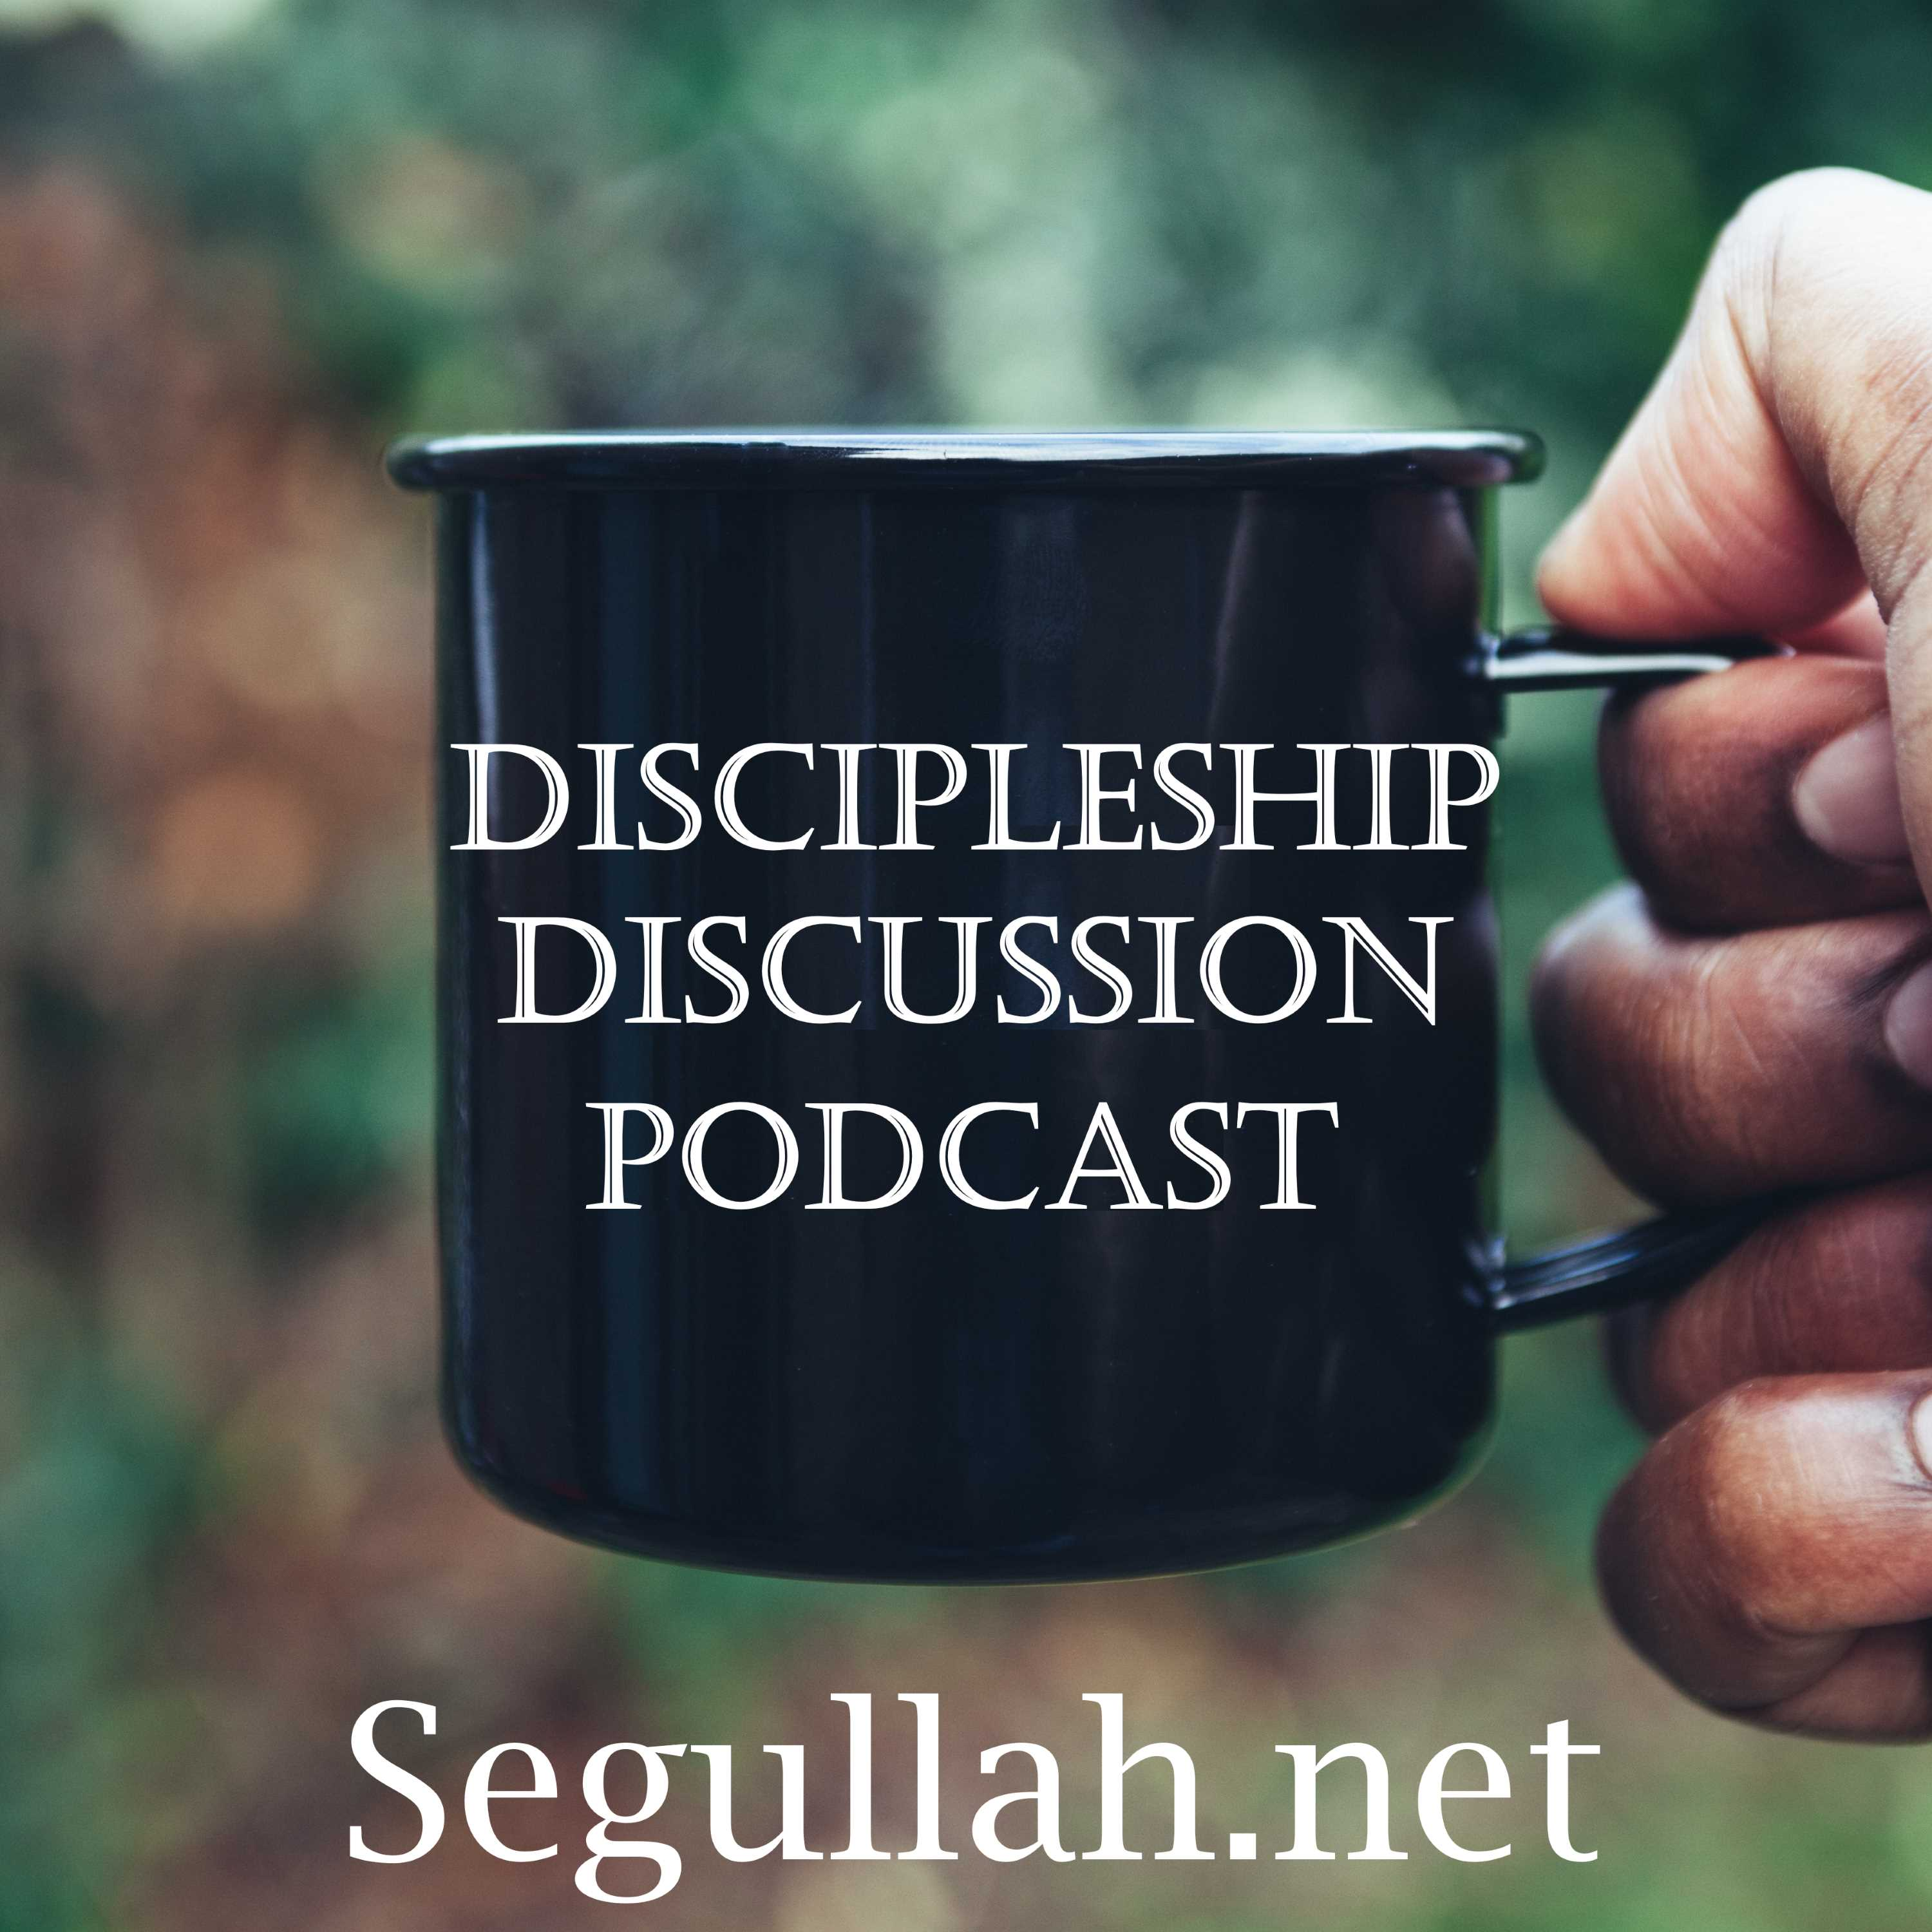 Discipleship Discussion Podcast